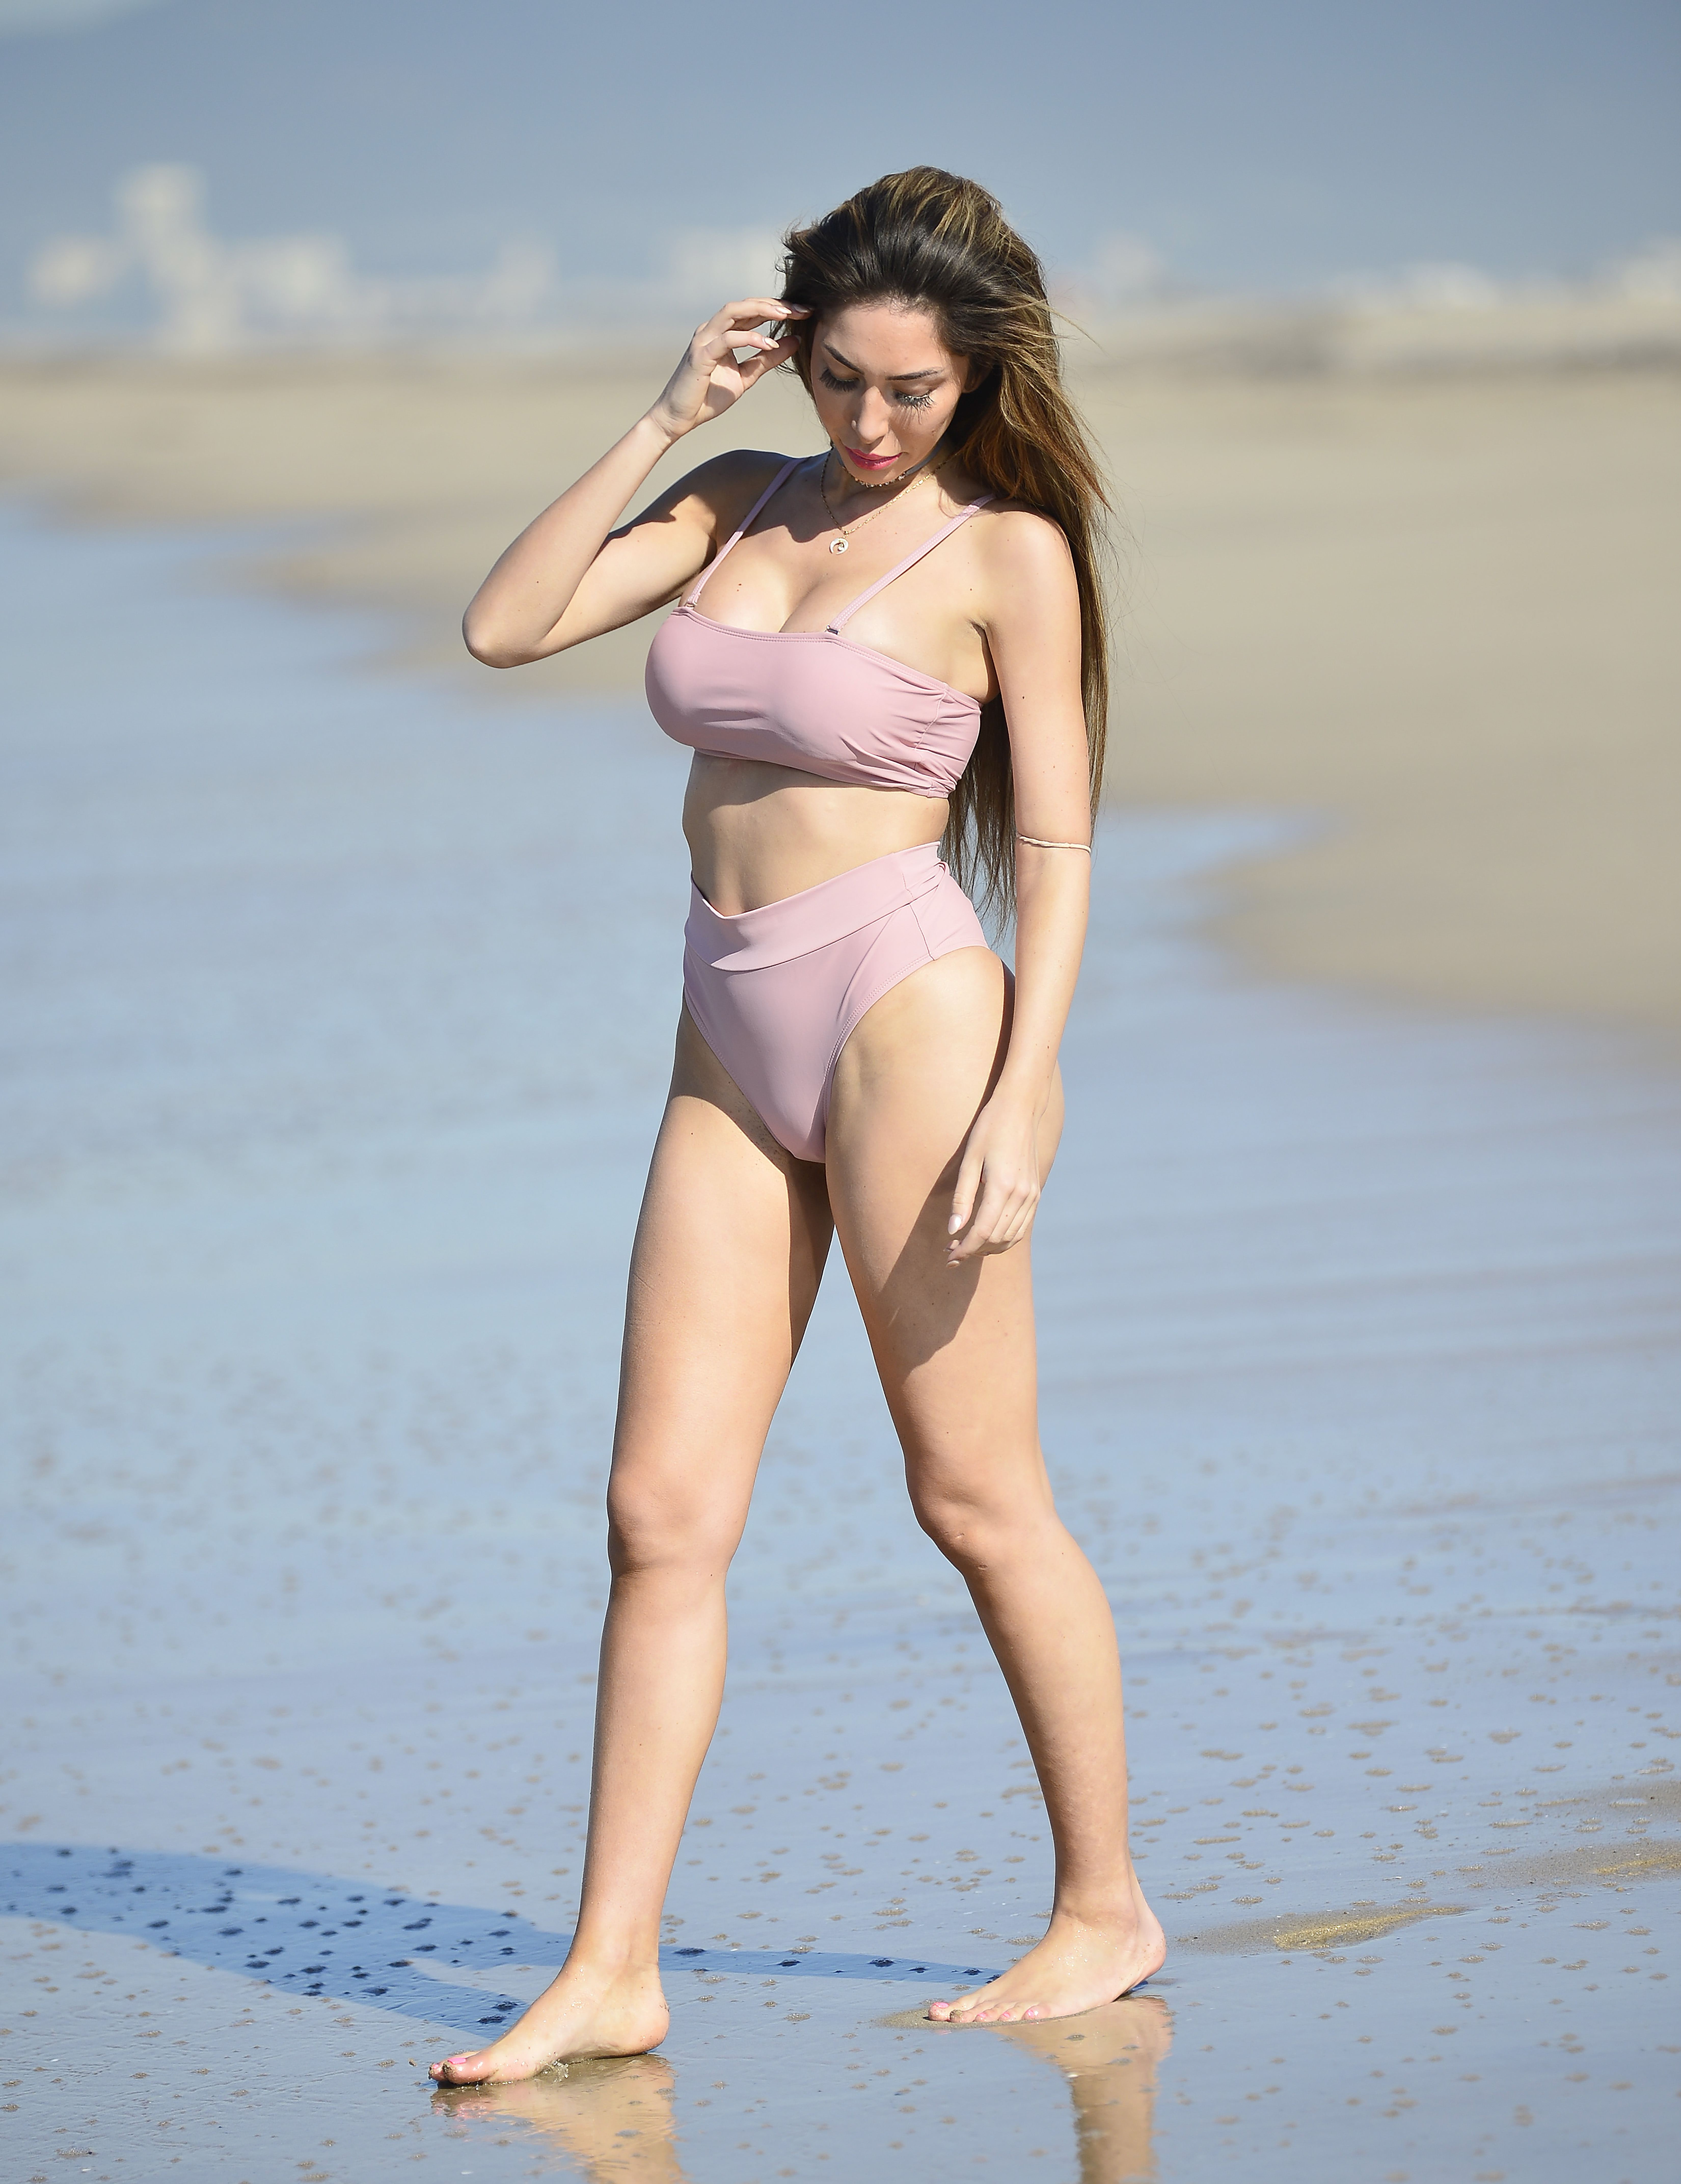 Farrah Abraham shows off her incredible figure